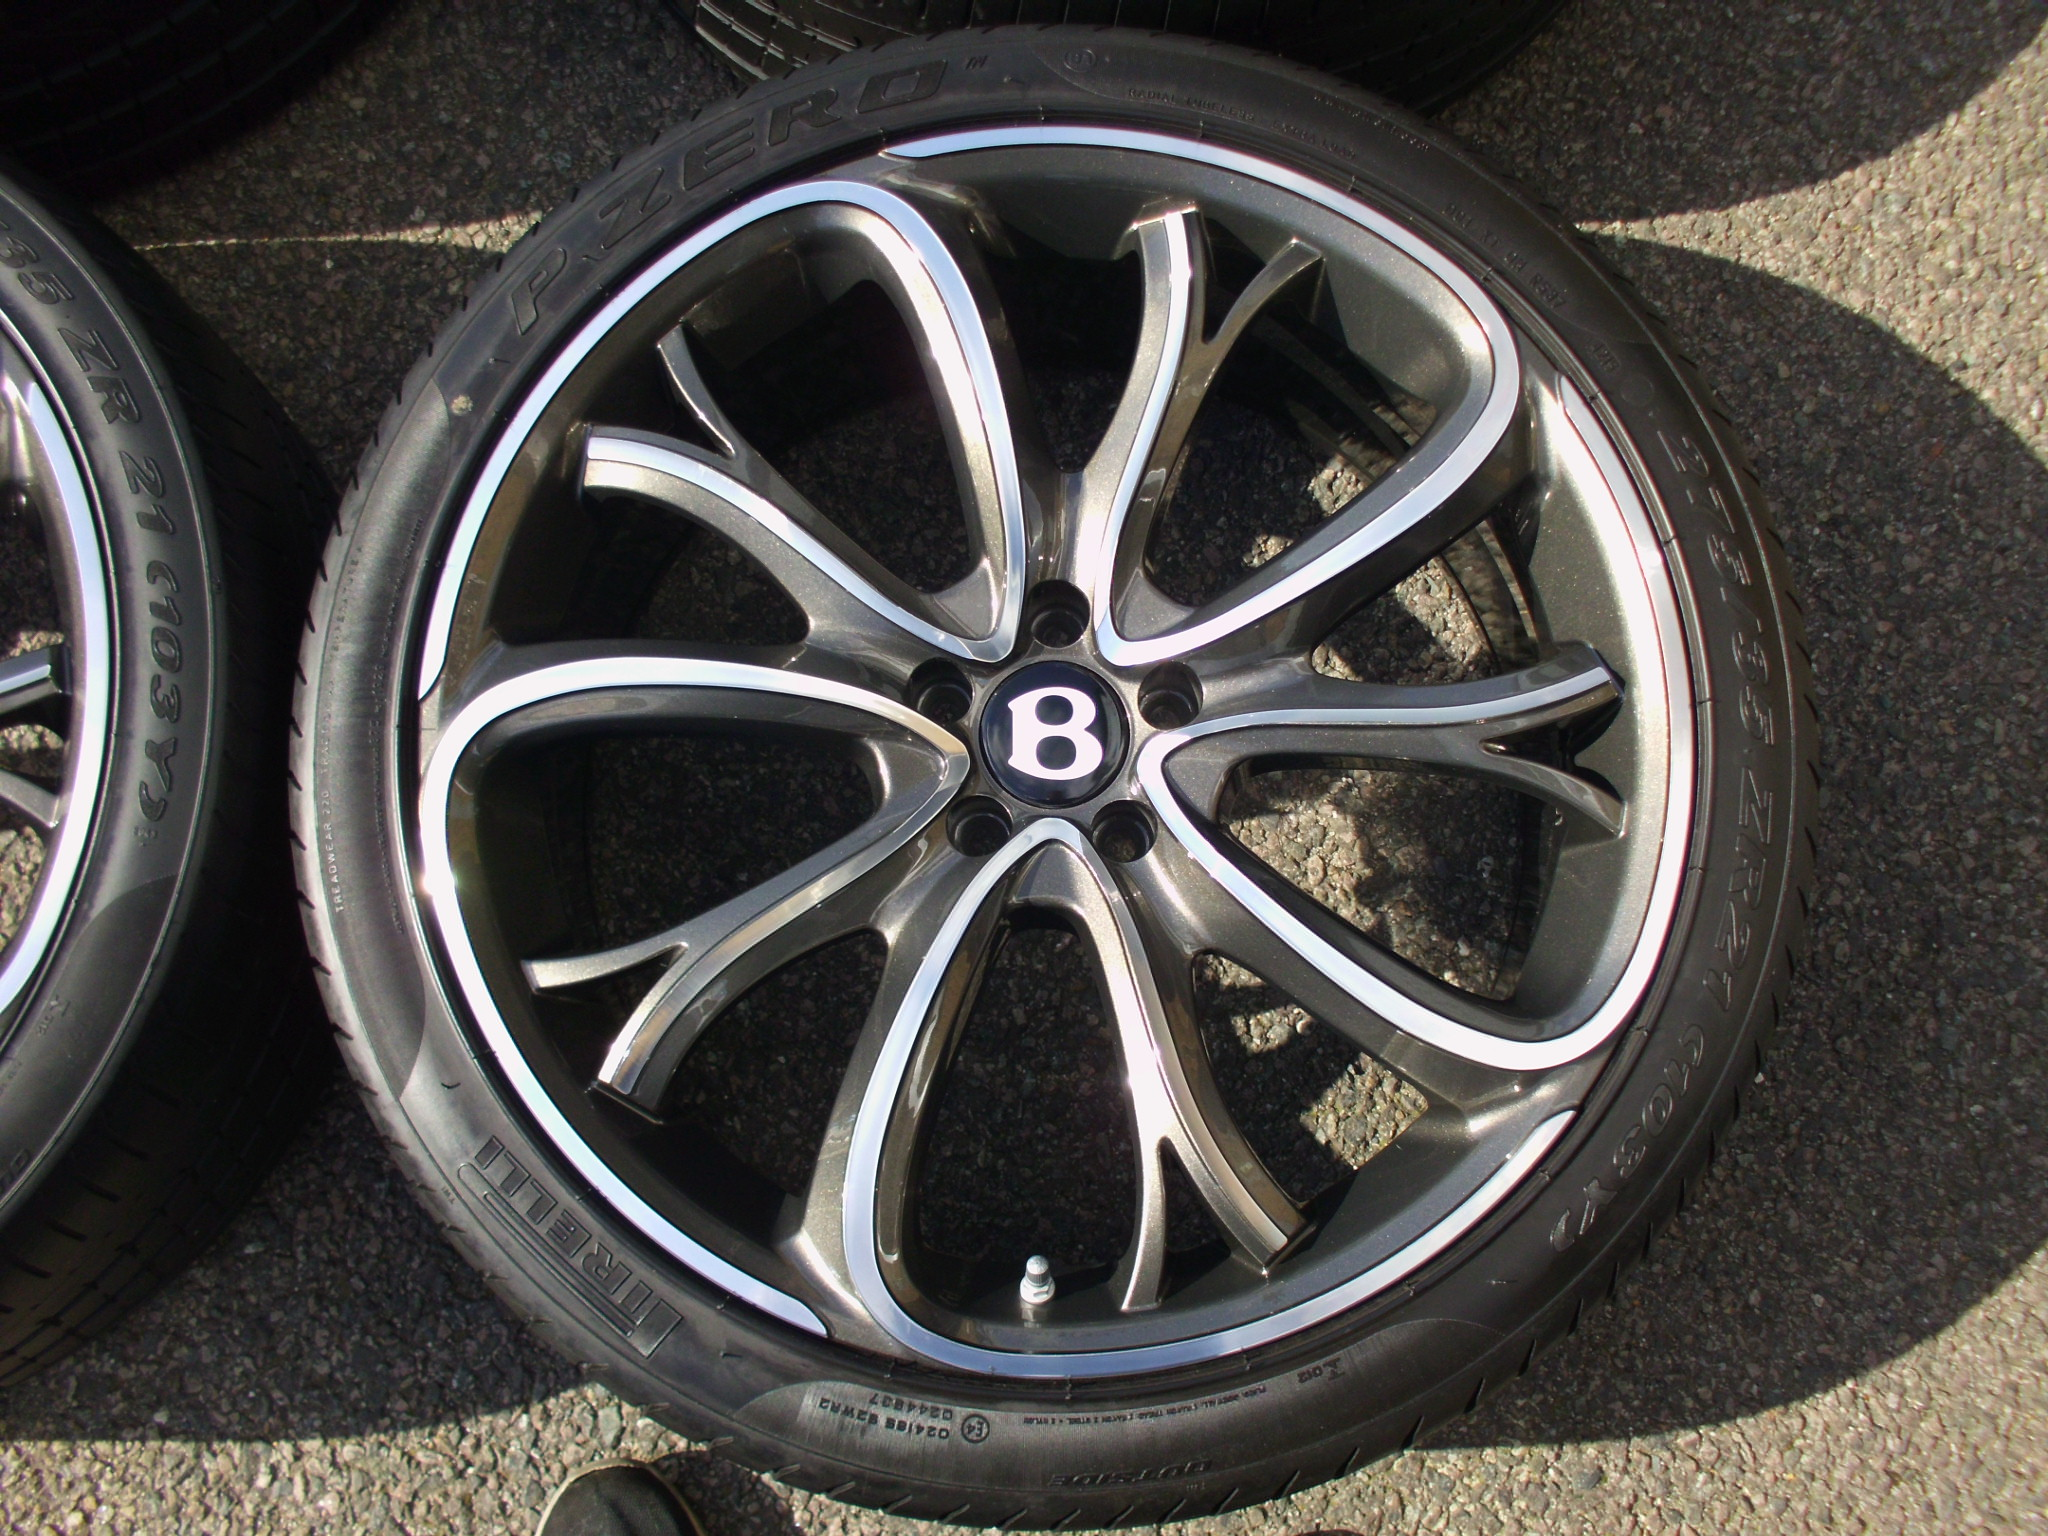 "NEW 21"" BENTLY SSR III ALLOY WHEELS IN DARK GUNMETAL WITH POLISHED FACE INC NEW OE TPMS AND PIRELLI TYRES"